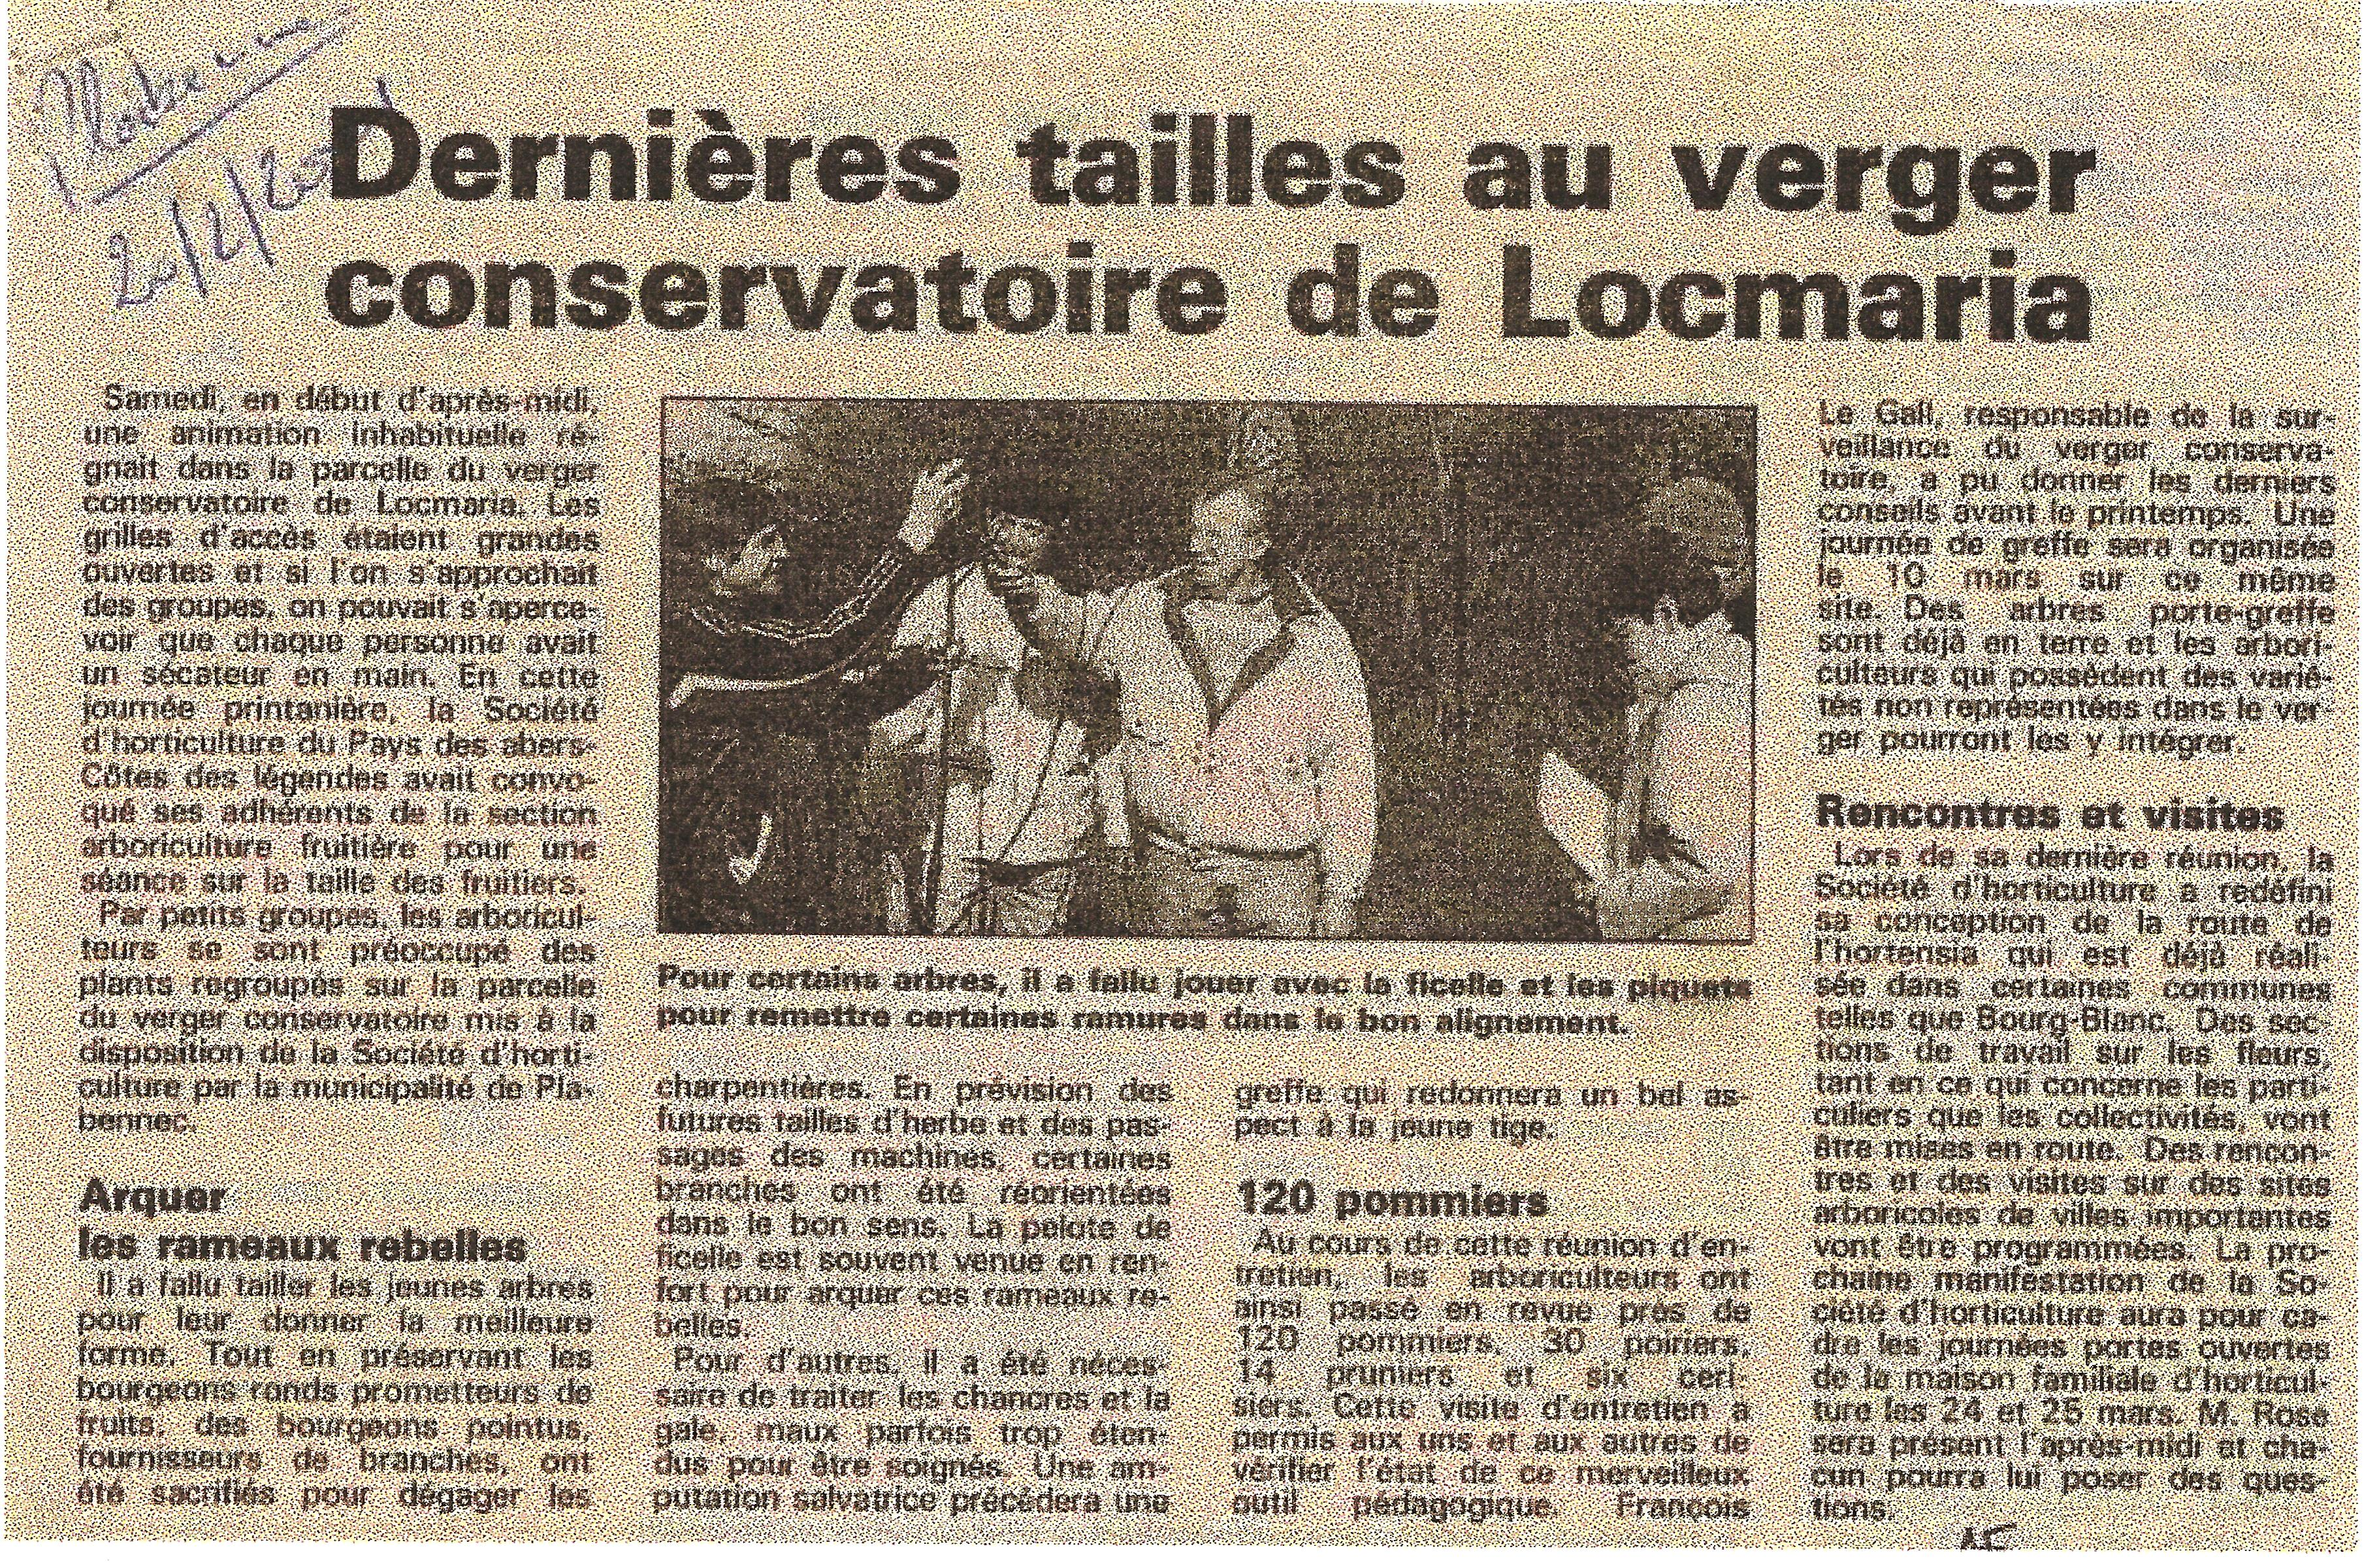 2001 02 20 Ouest France